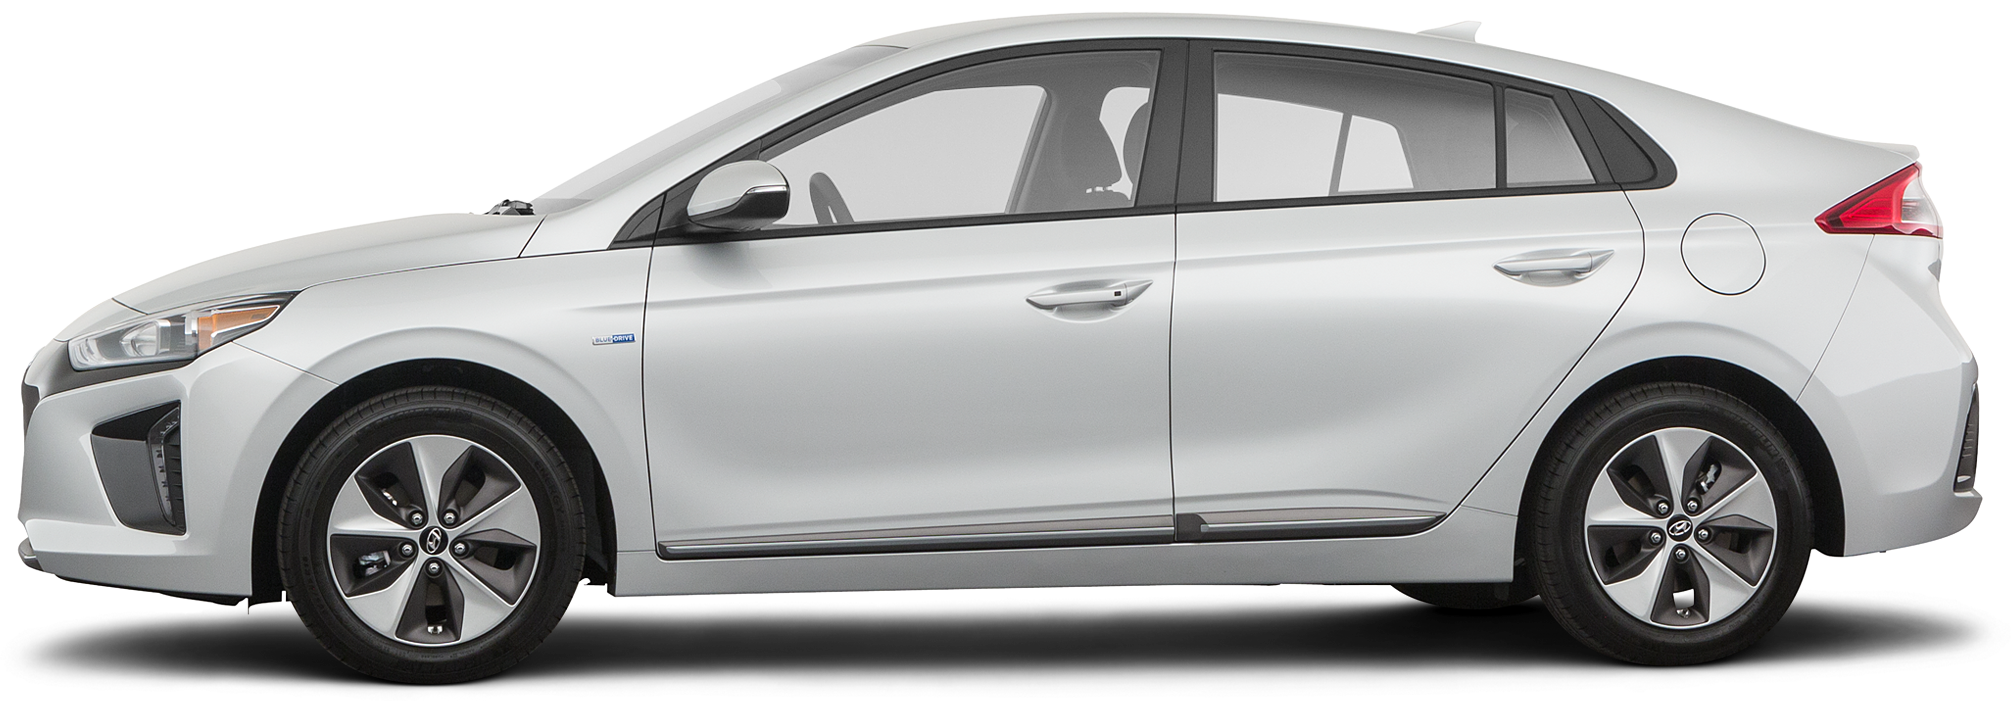 2019 Hyundai Ioniq EV Hatchback Electric